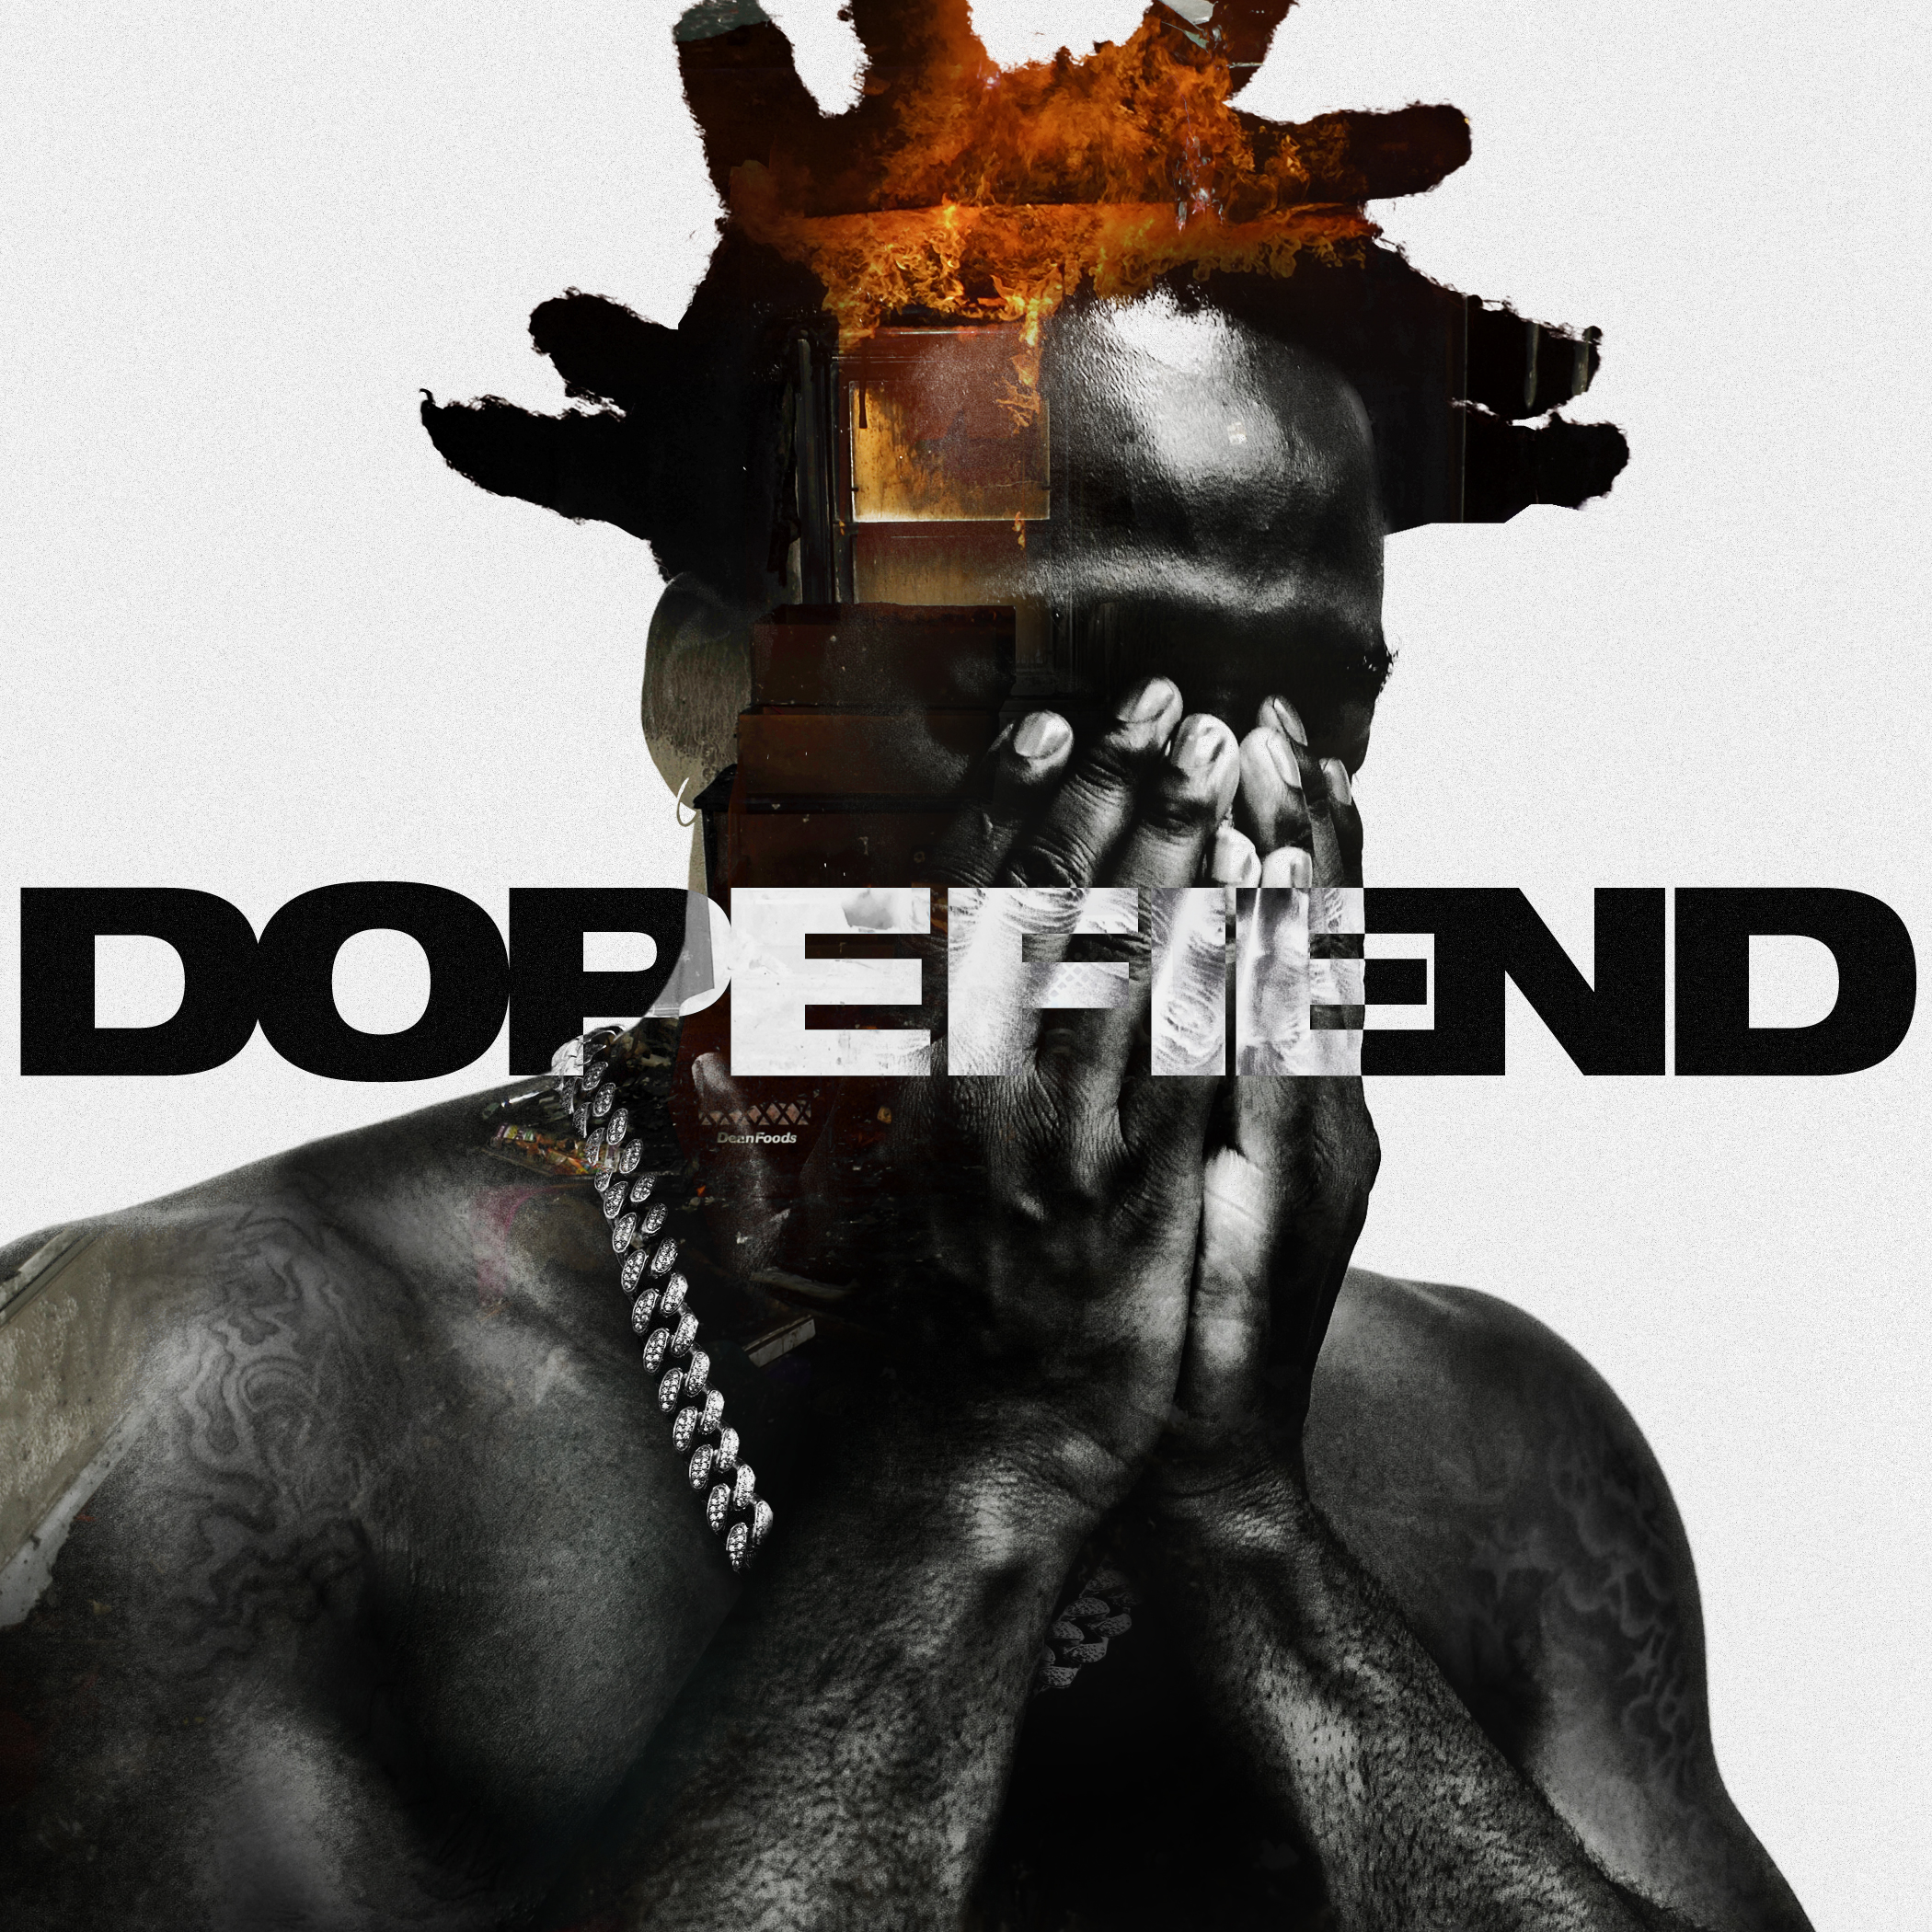 Dopefiend is the second official single from Reconcile's upcoming album, Streets Don't Love You 2, dropping June 28th.